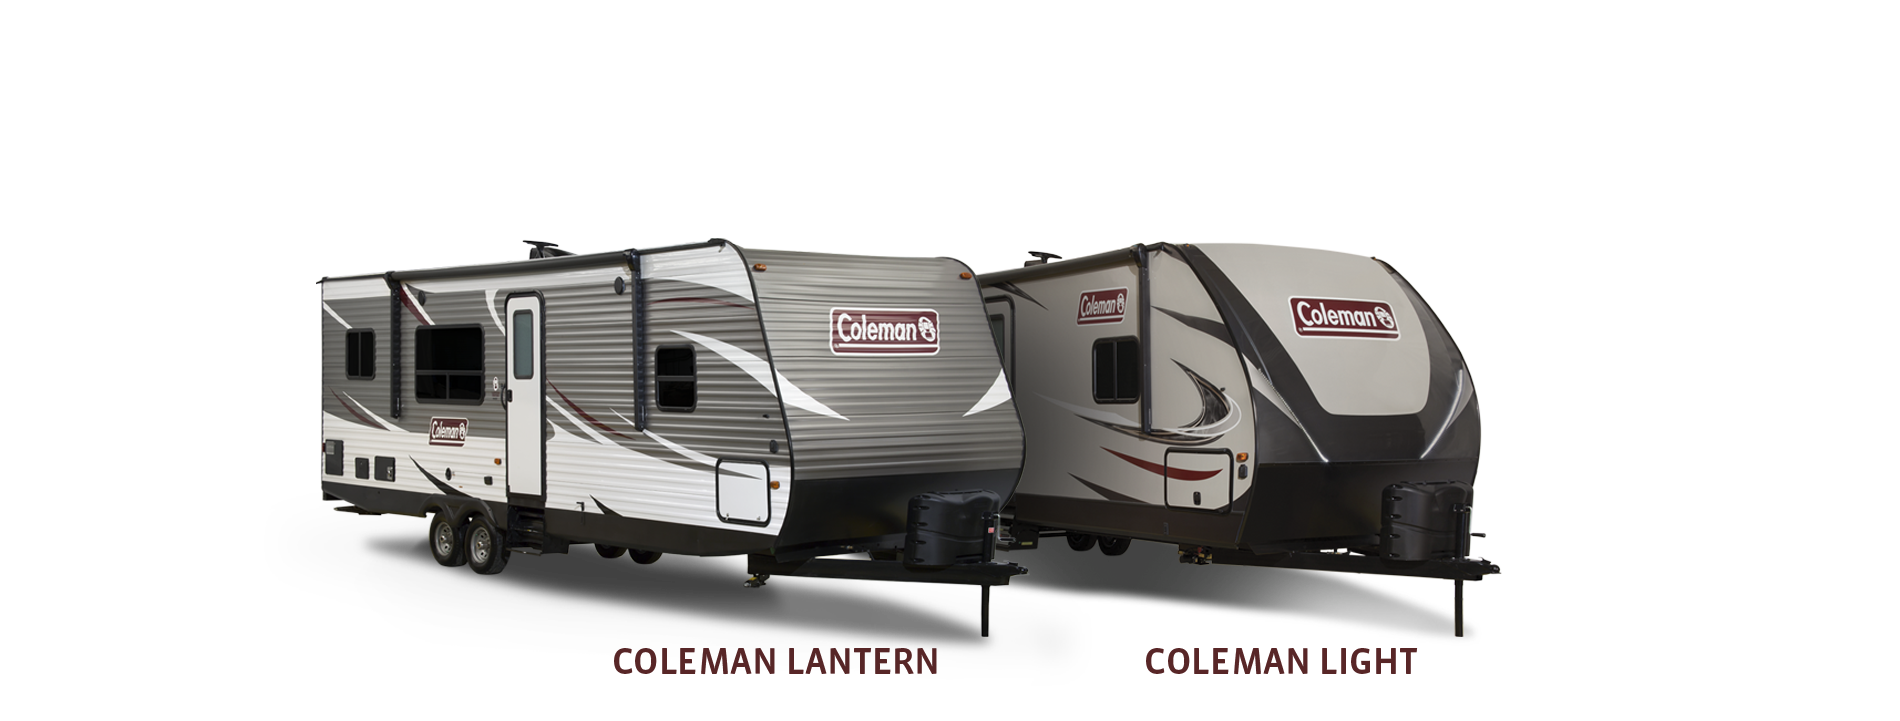 Car hauler trailer clipart png stock Coleman RV Travel Trailers png stock